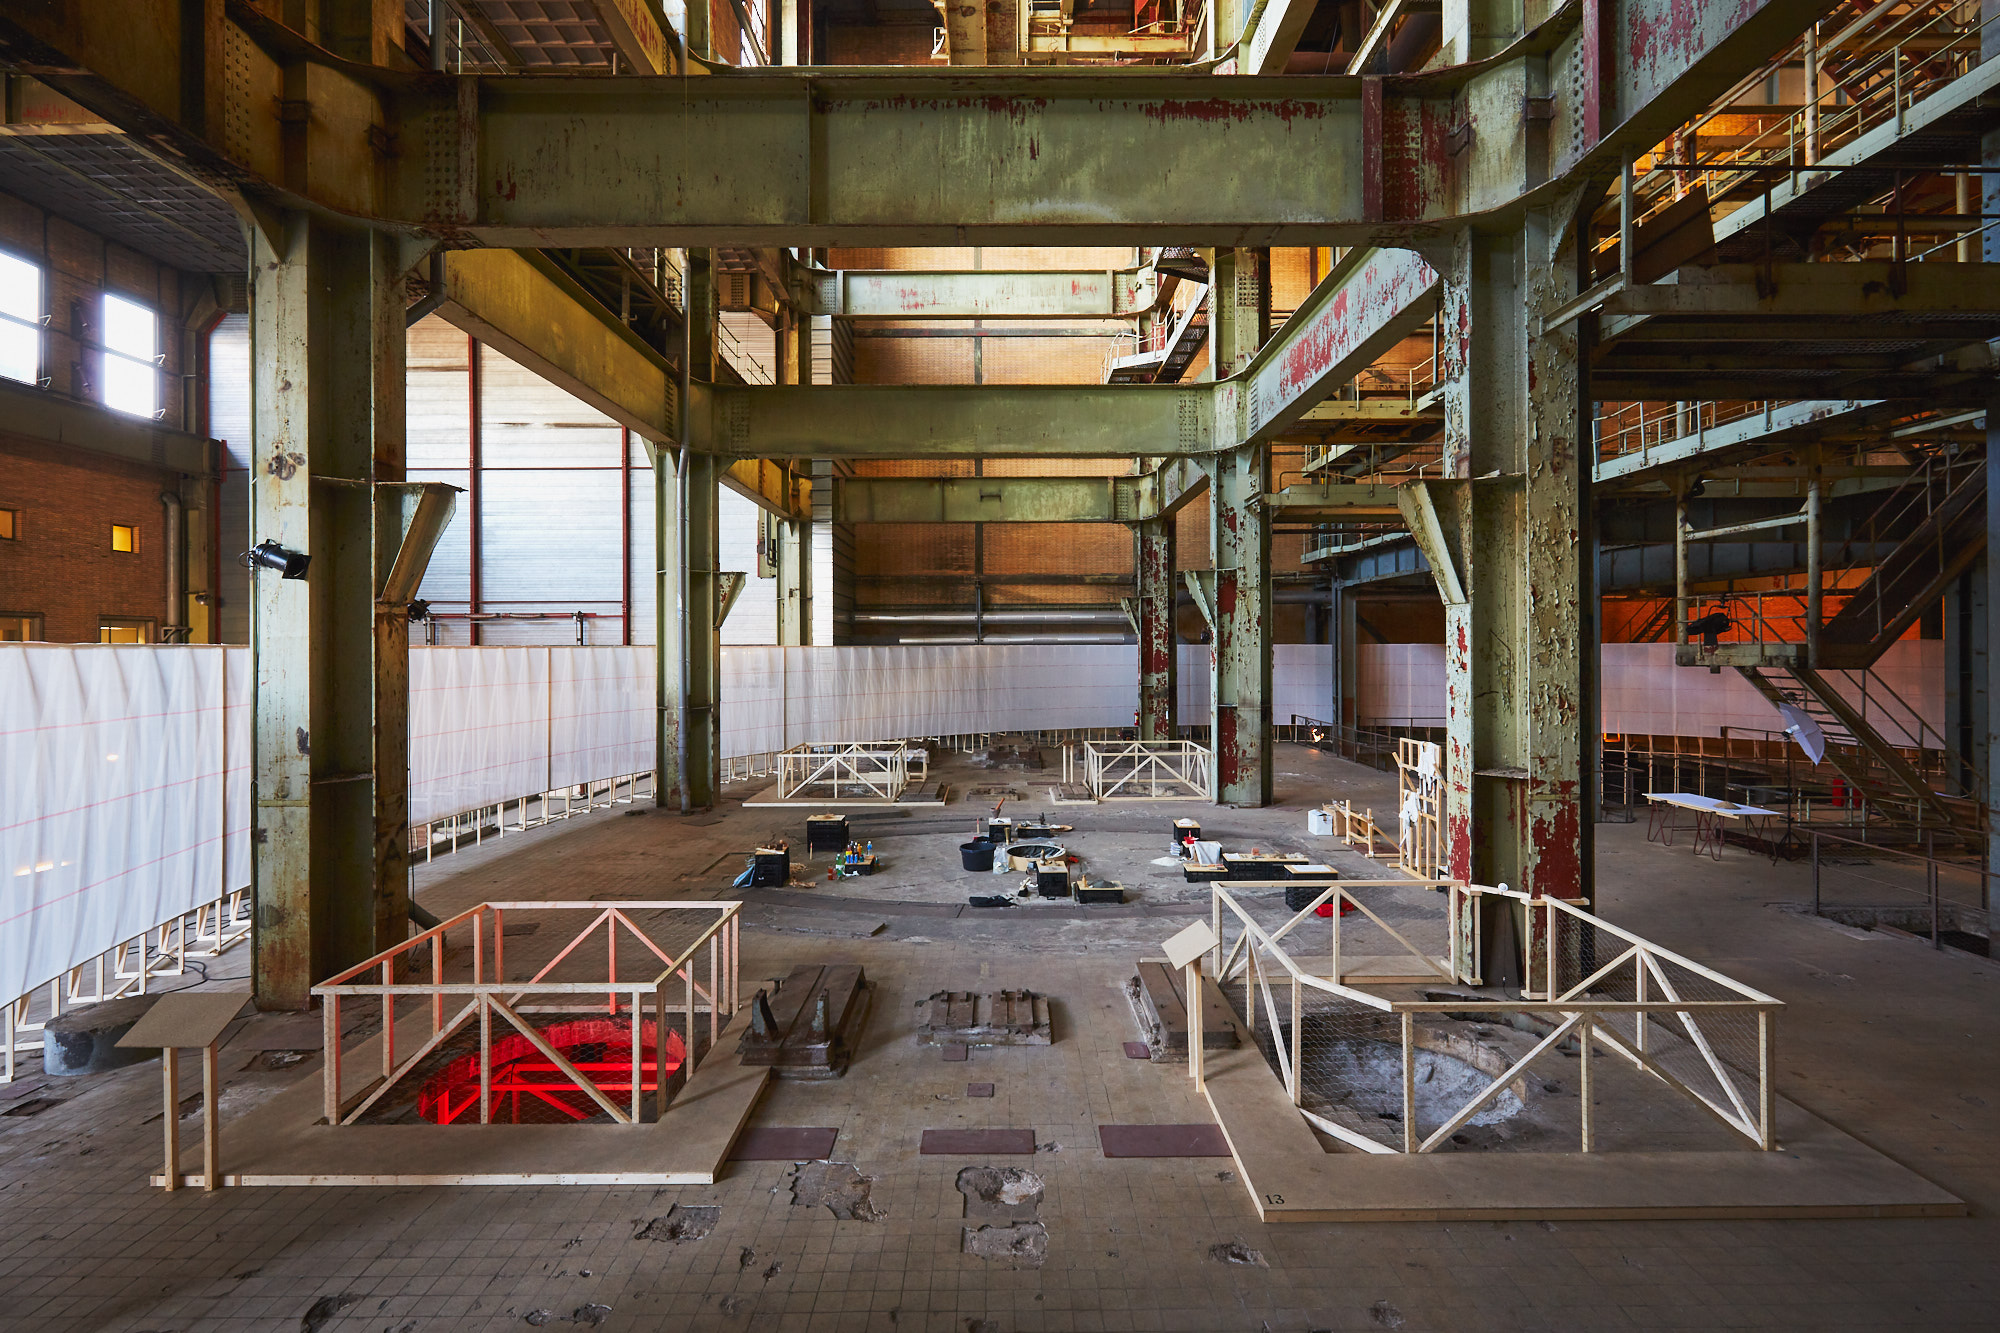 Thijs Ebbe Fokkens – Every_Future_partII 4